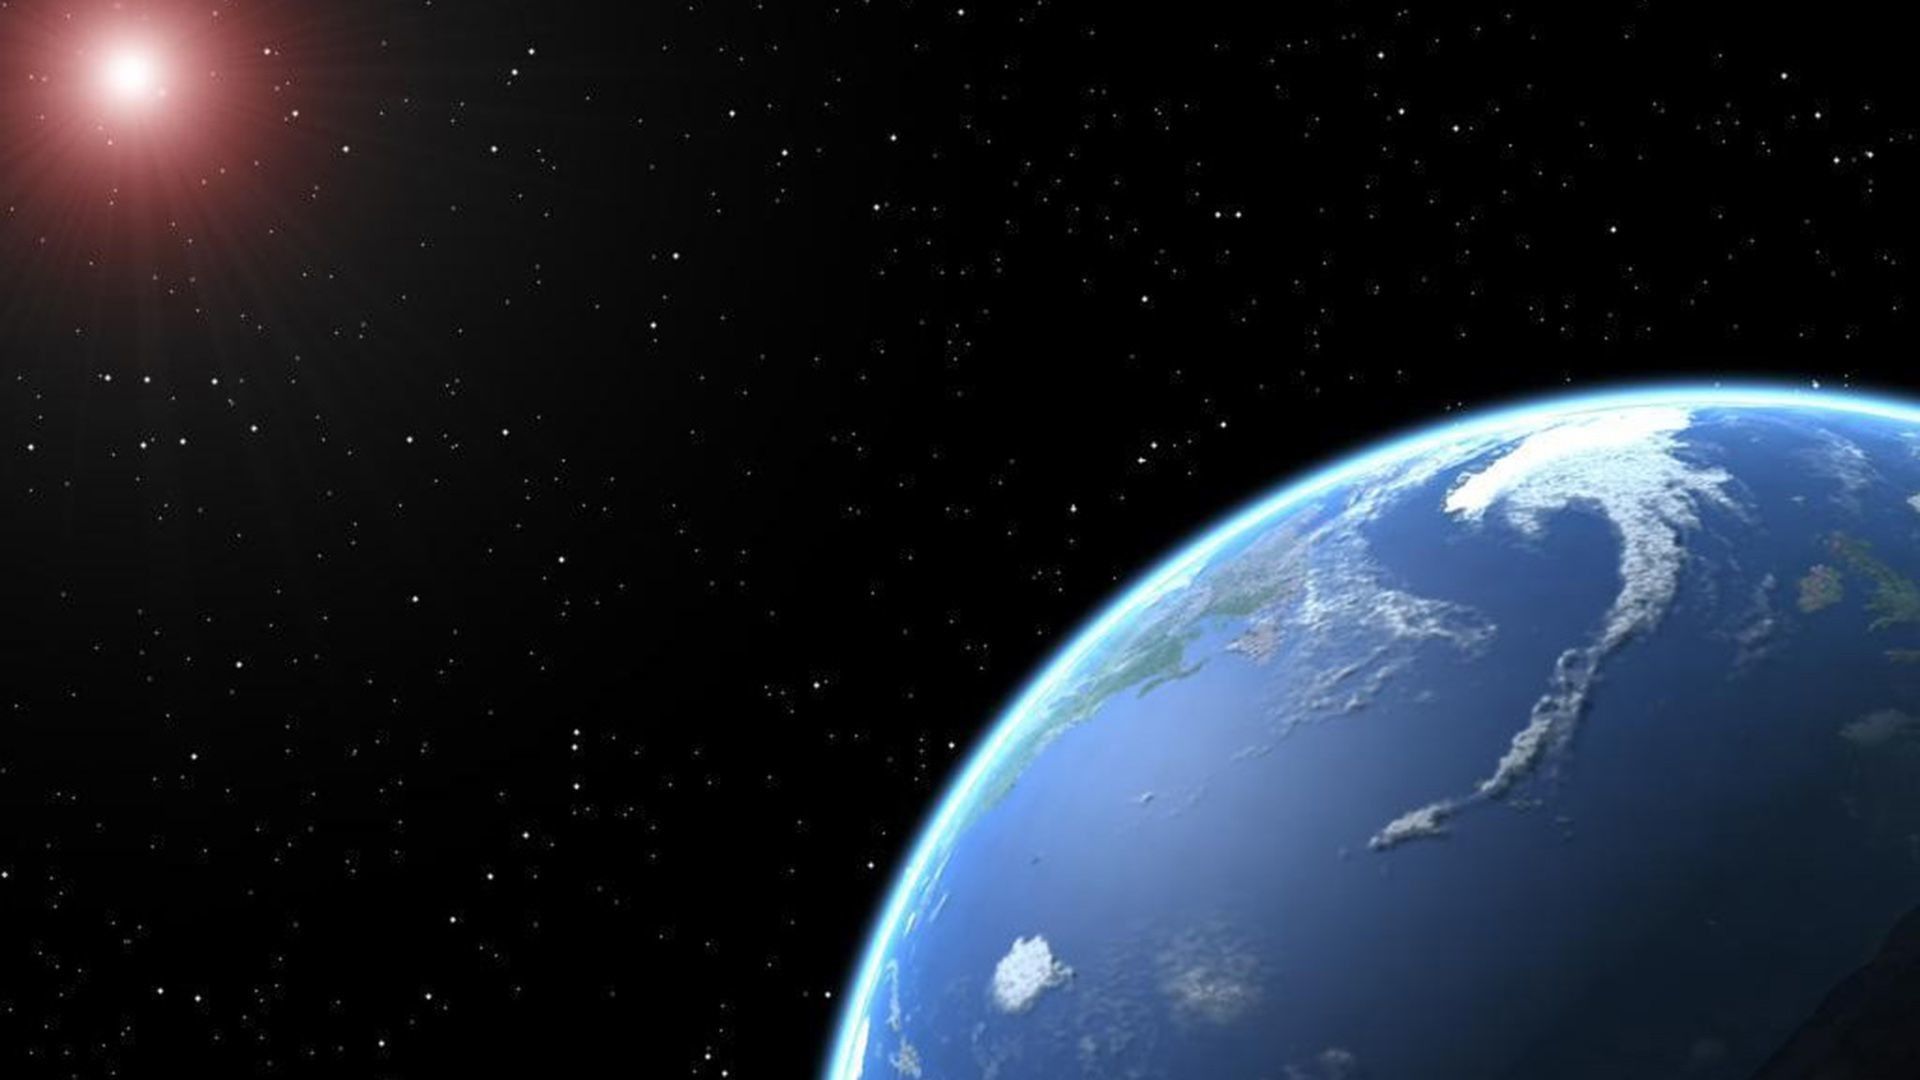 Hd Space Wallpapers 1080p 70 Images